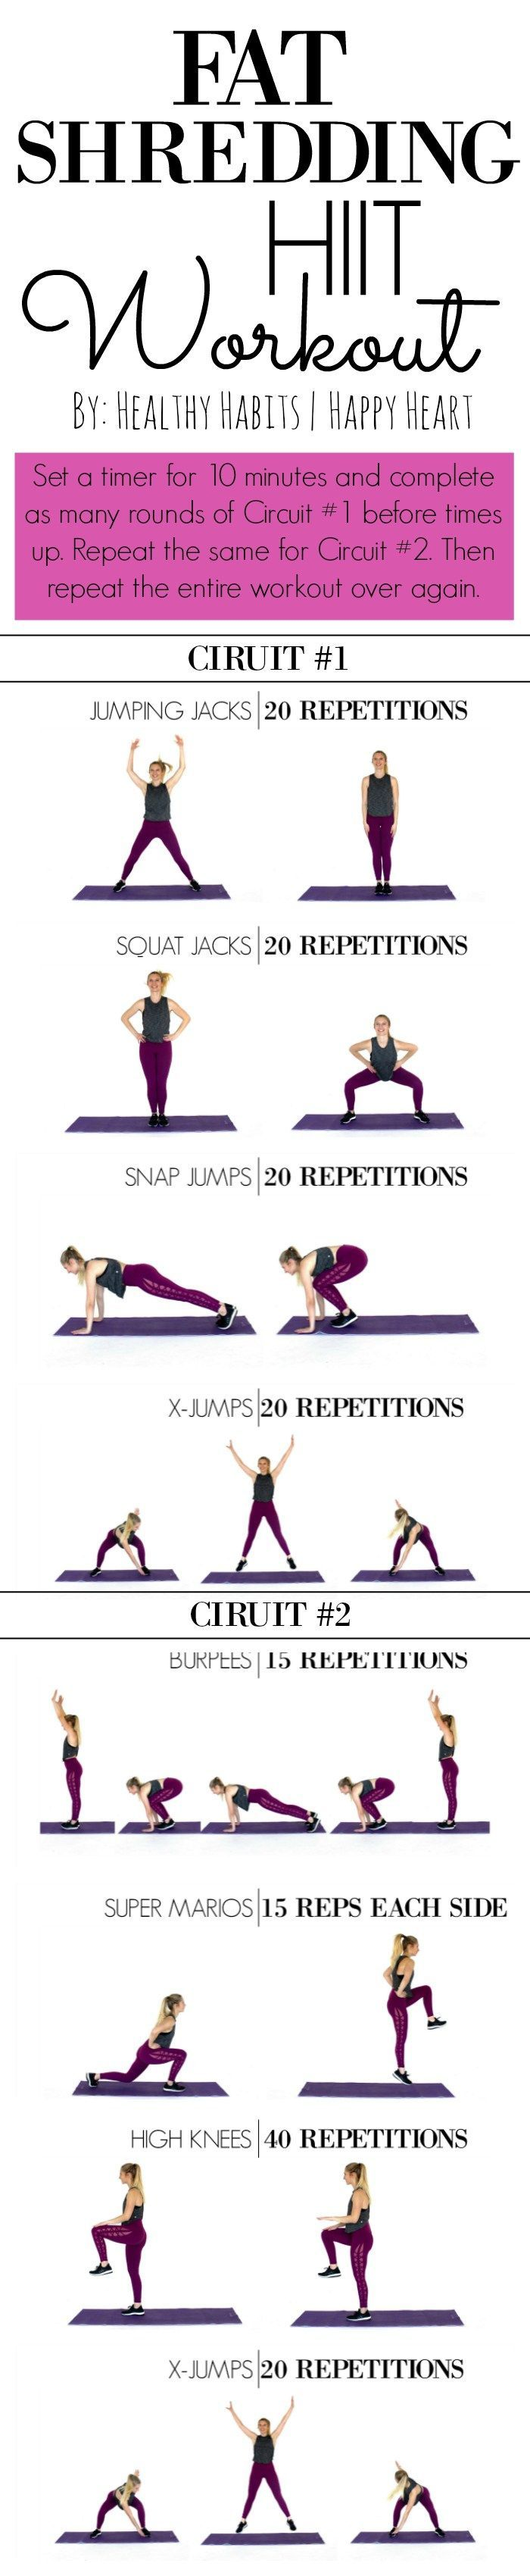 This HIIT workout is KILLER! Love it!